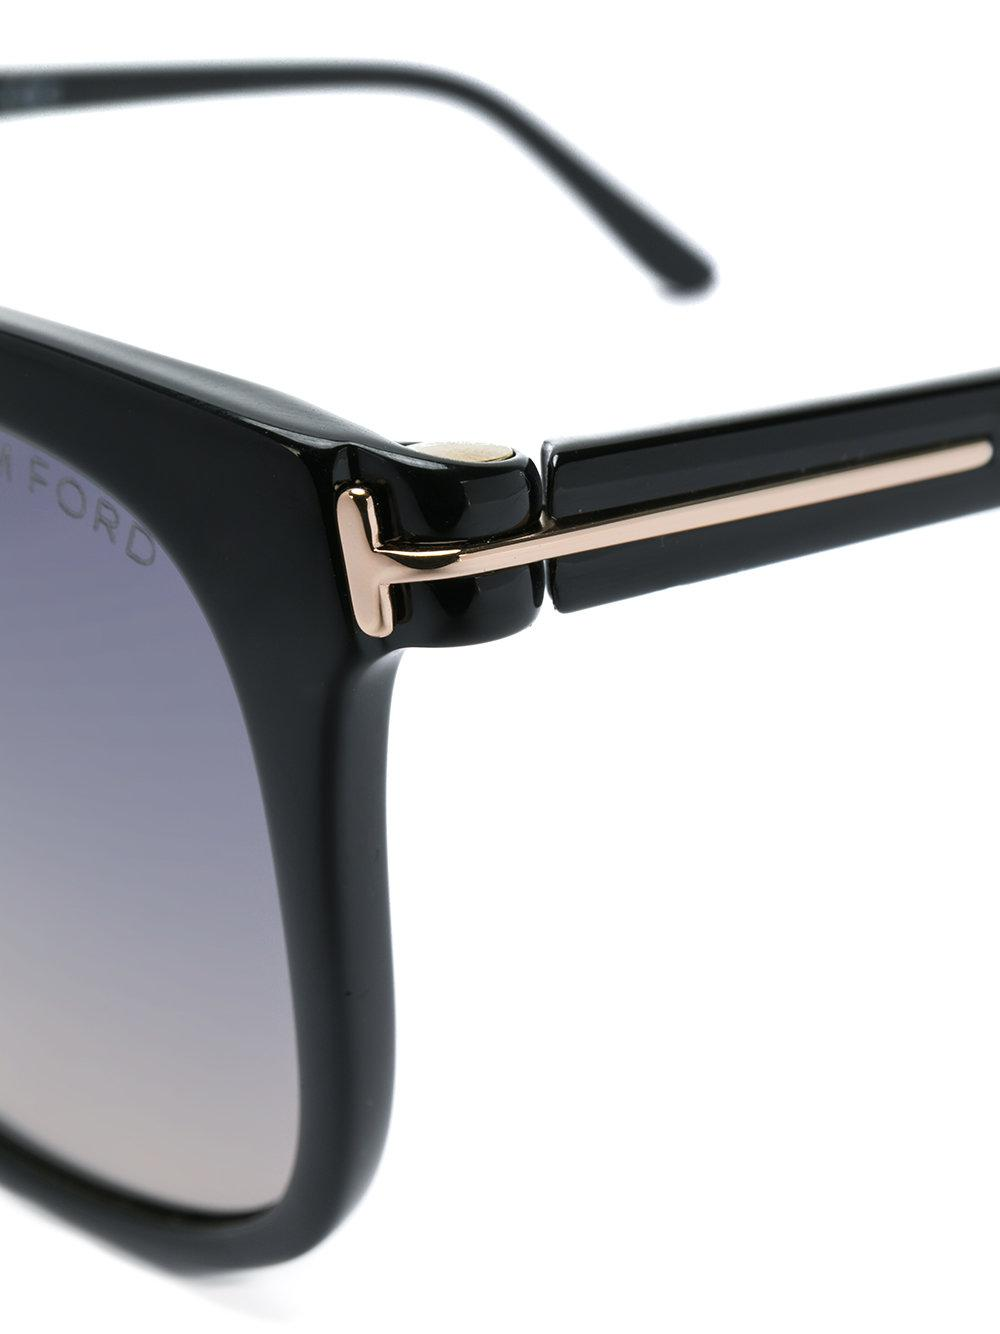 883d99ab2a0 Lyst - Tom Ford Fiona 02 Sunglasses in Black